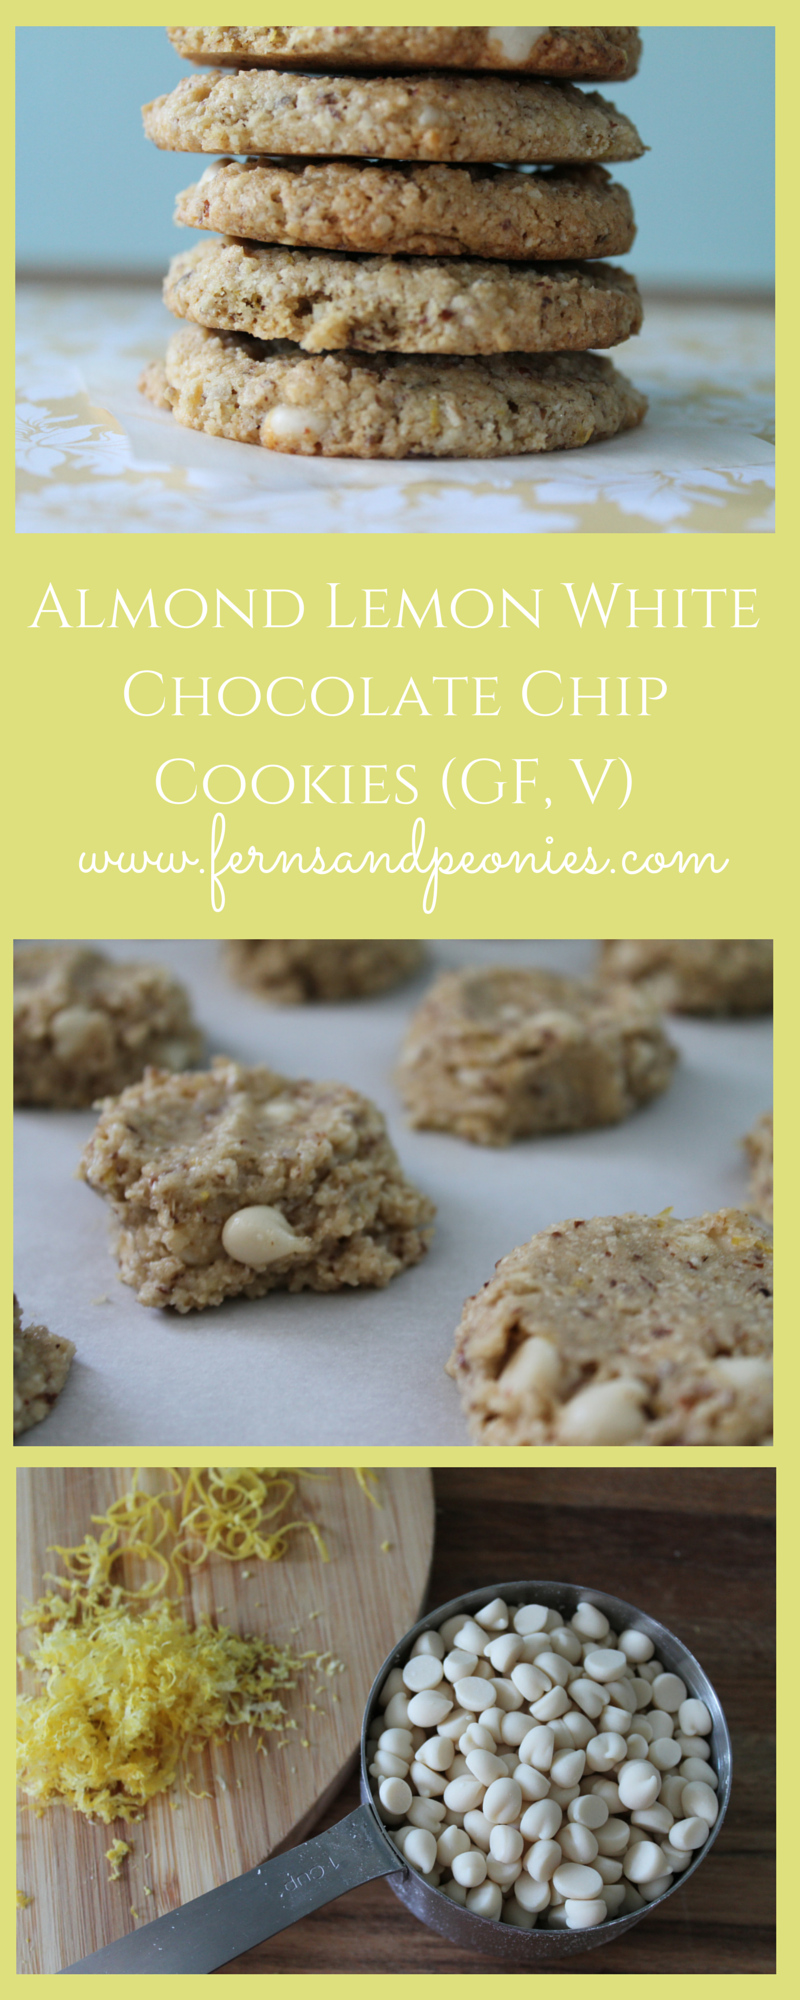 Chewy Almond Lemon White Chocolate Chip Cookies (GF,V) from www.fernsandpeonies.com